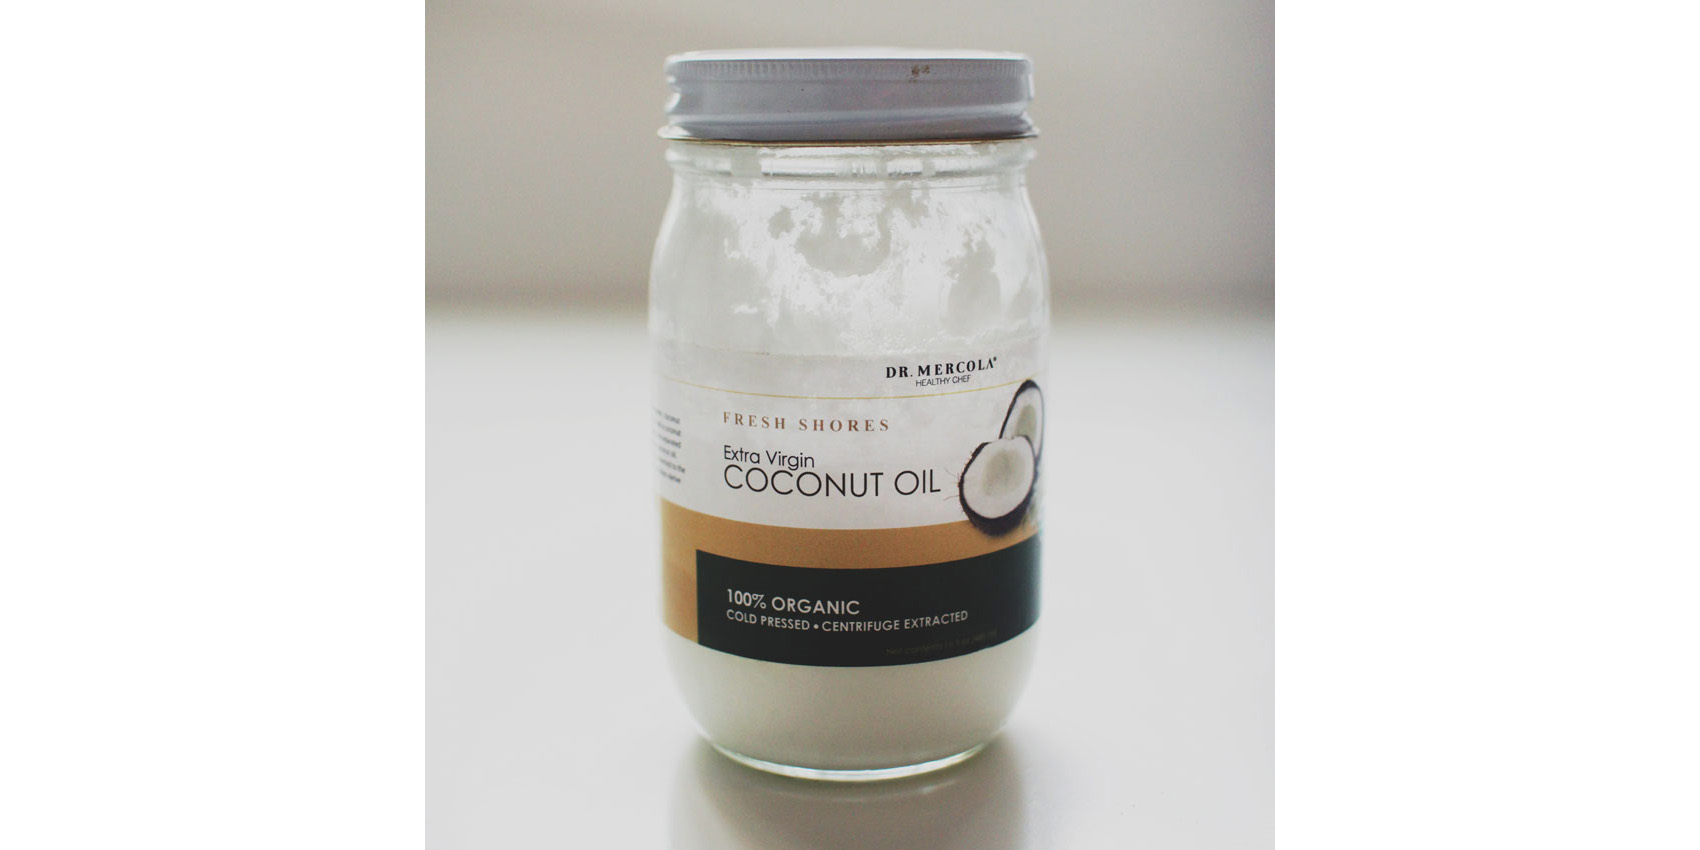 Considering Coconut Oil